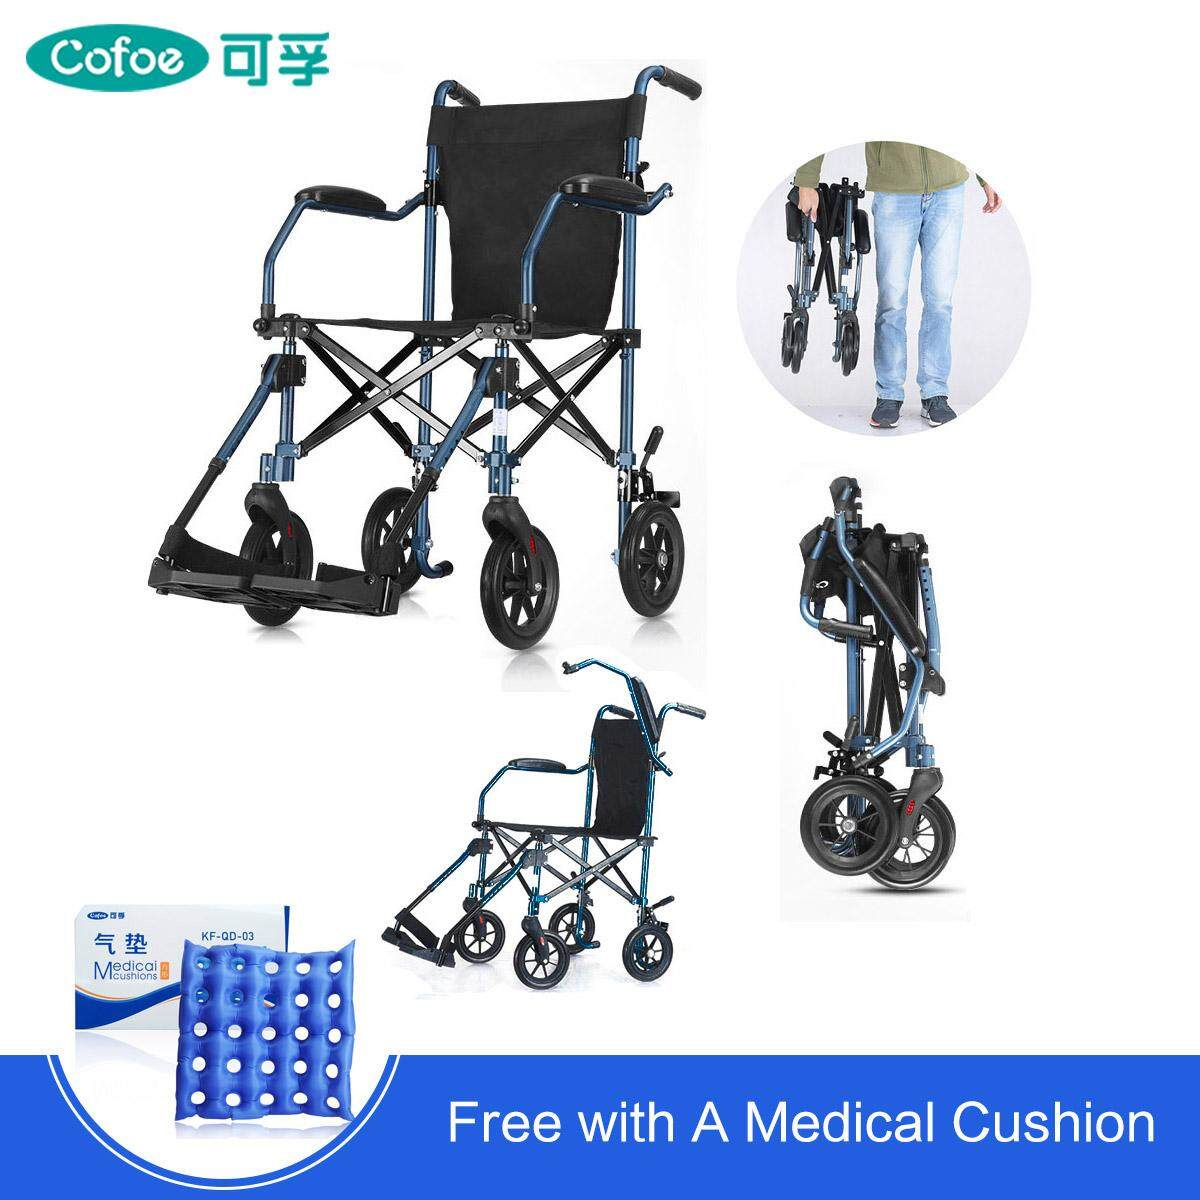 Wheel Chair Cushion Free Shippingcofoe Foldable Elderly Wheelchair Aluminum Compact Lightweight Wheel Chair With Foot Board Removable Trolley Cart Travel Walker